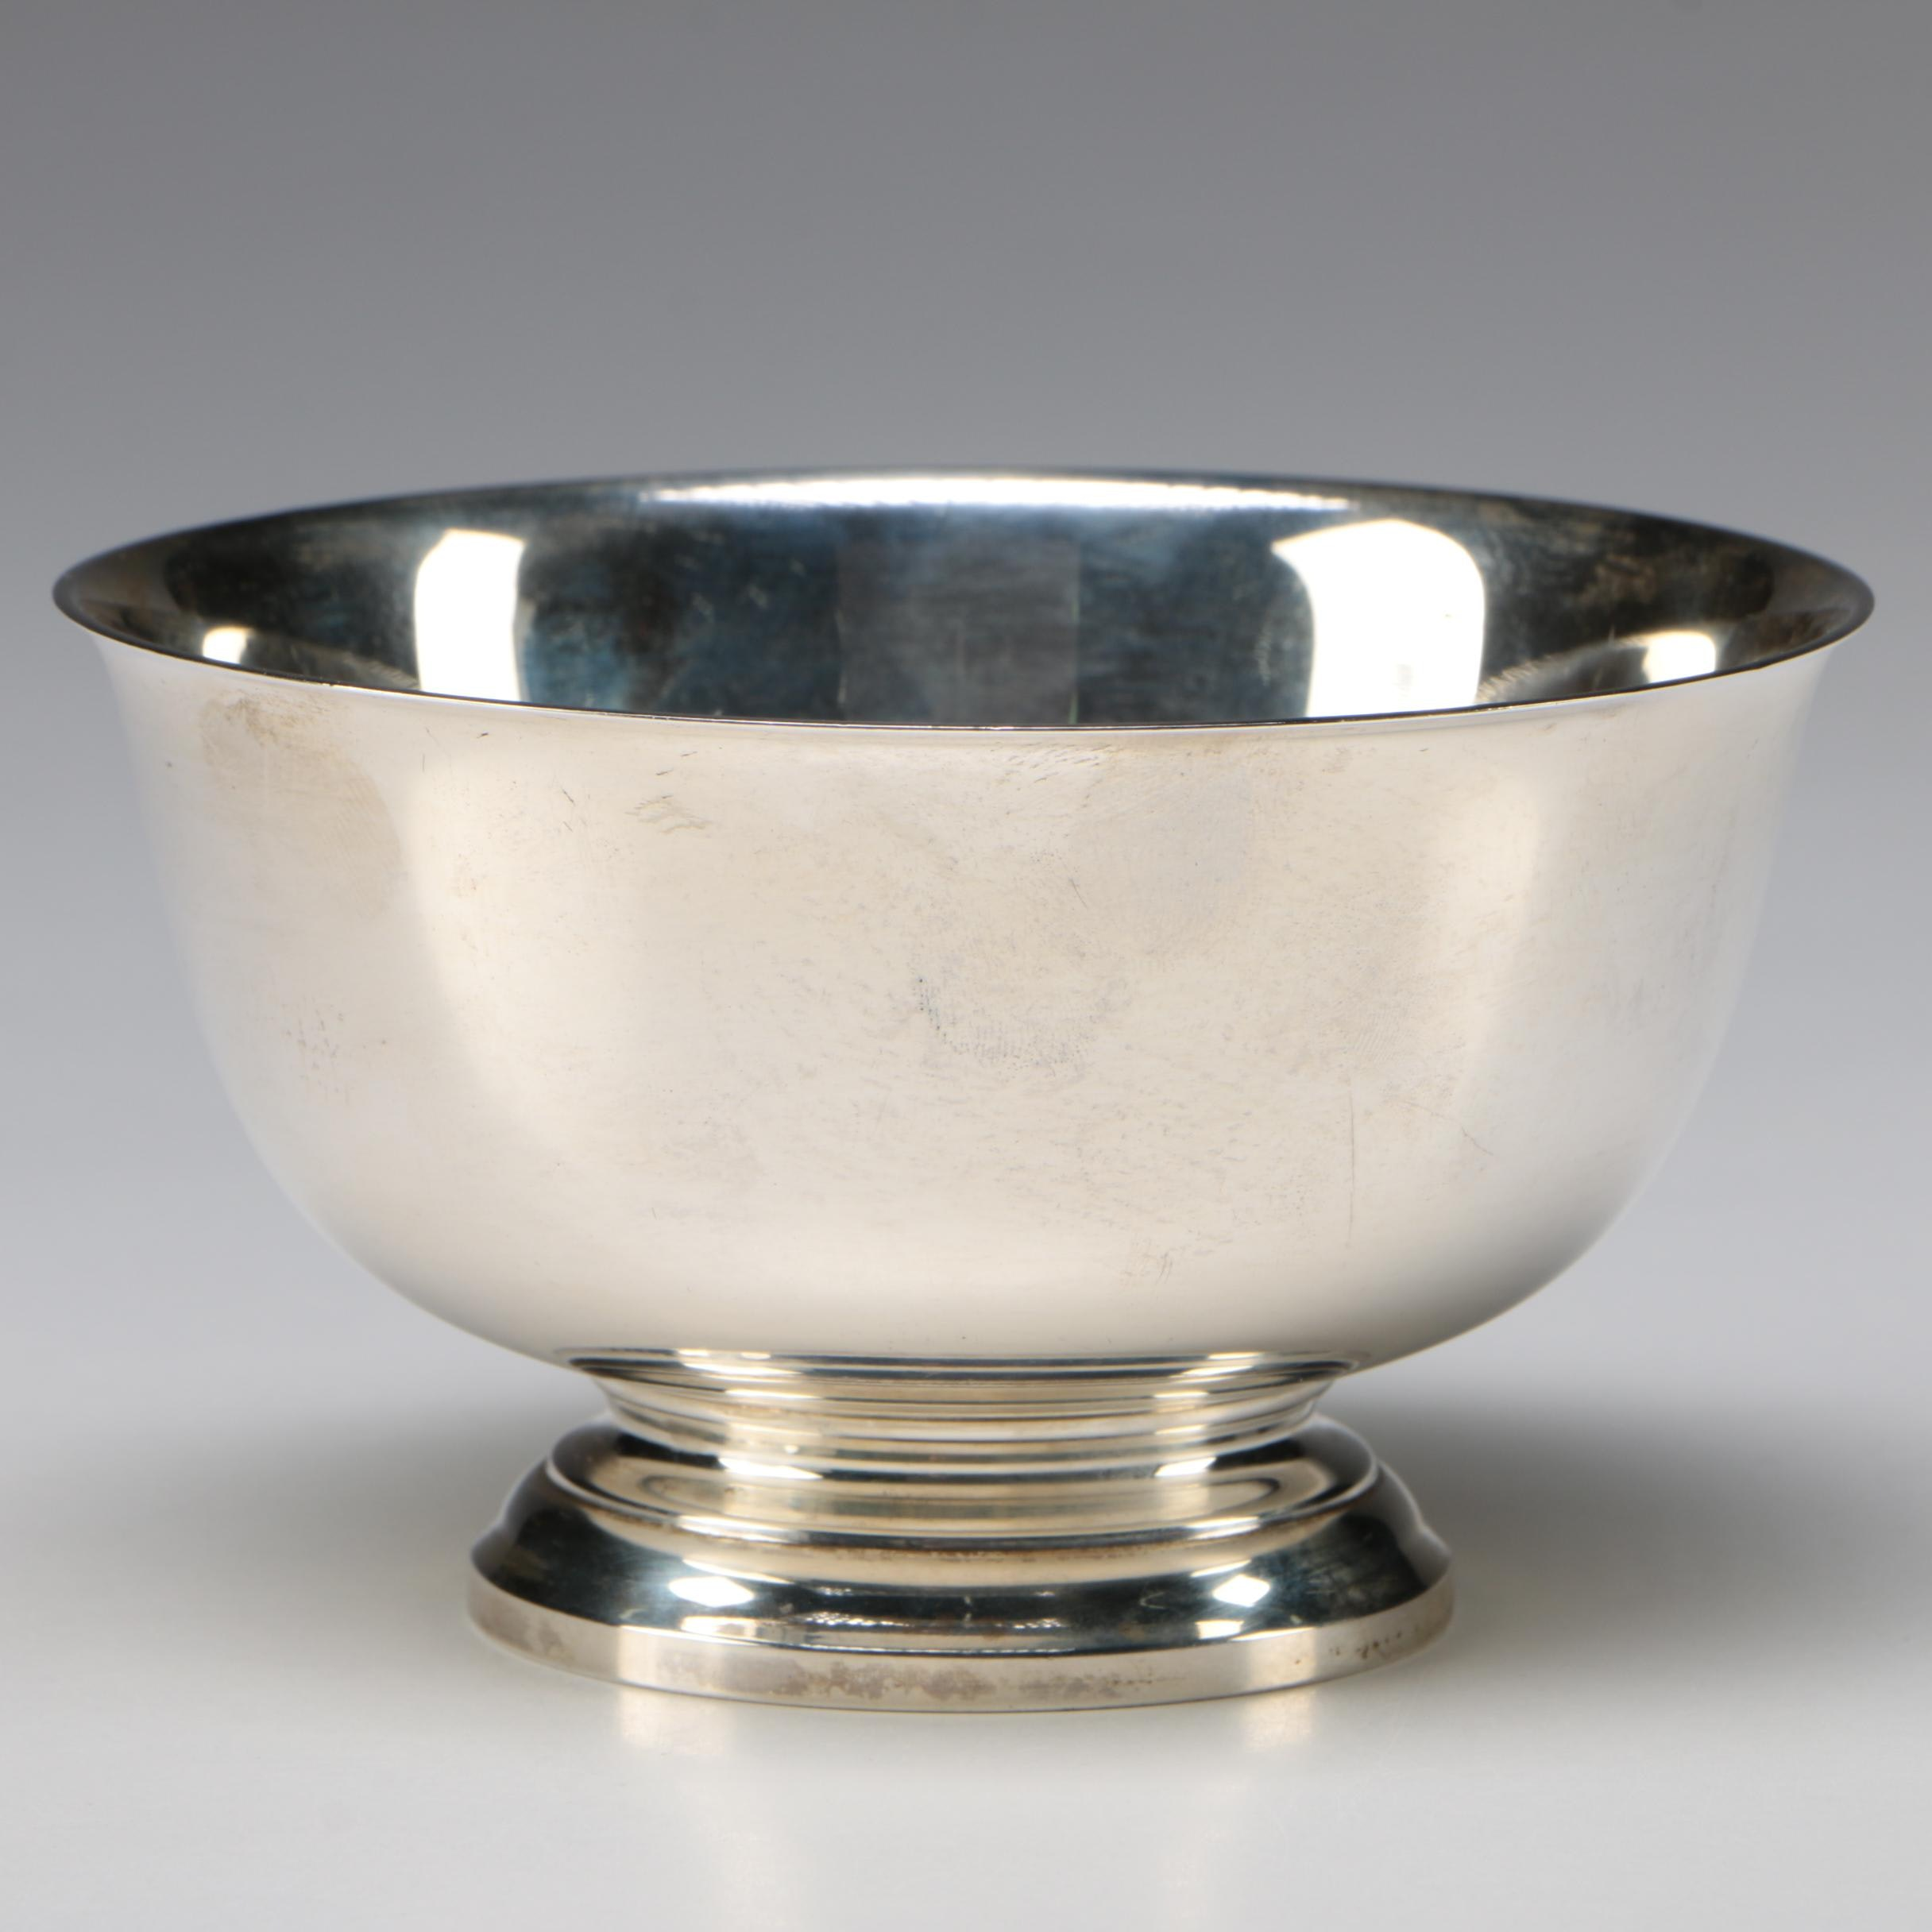 Gorham Sterling Silver Reproduction Paul Revere Bowl, 1953